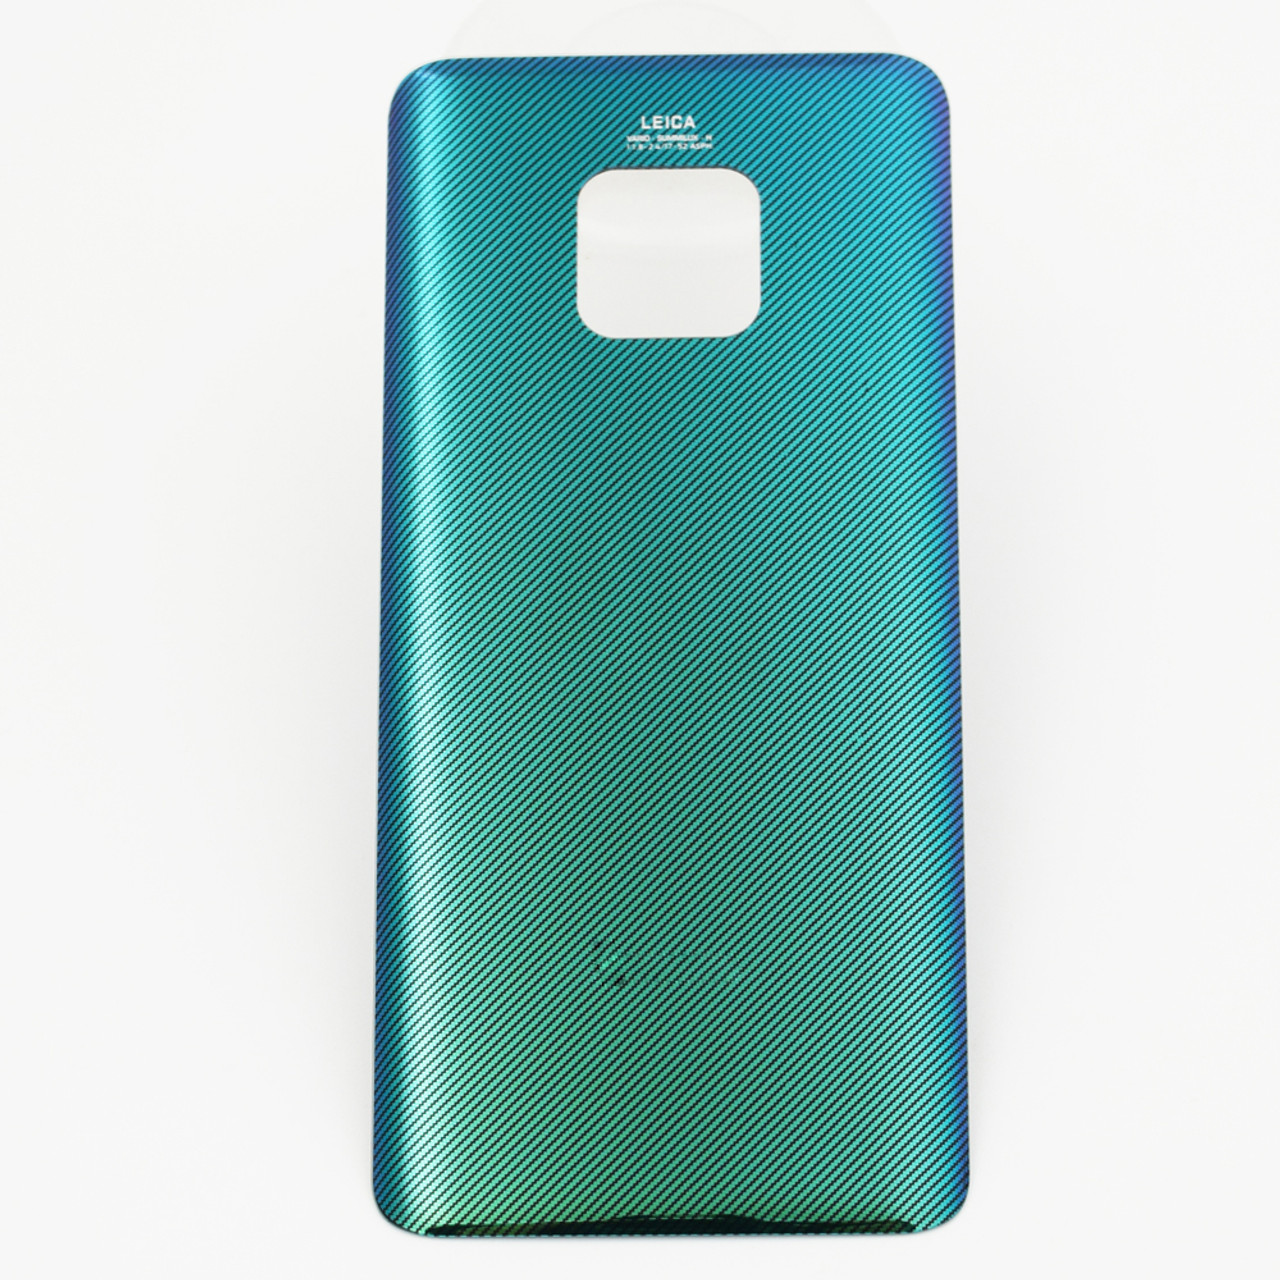 Generic Back Cover for Huawei Mate 20 Pro -Emerald Green